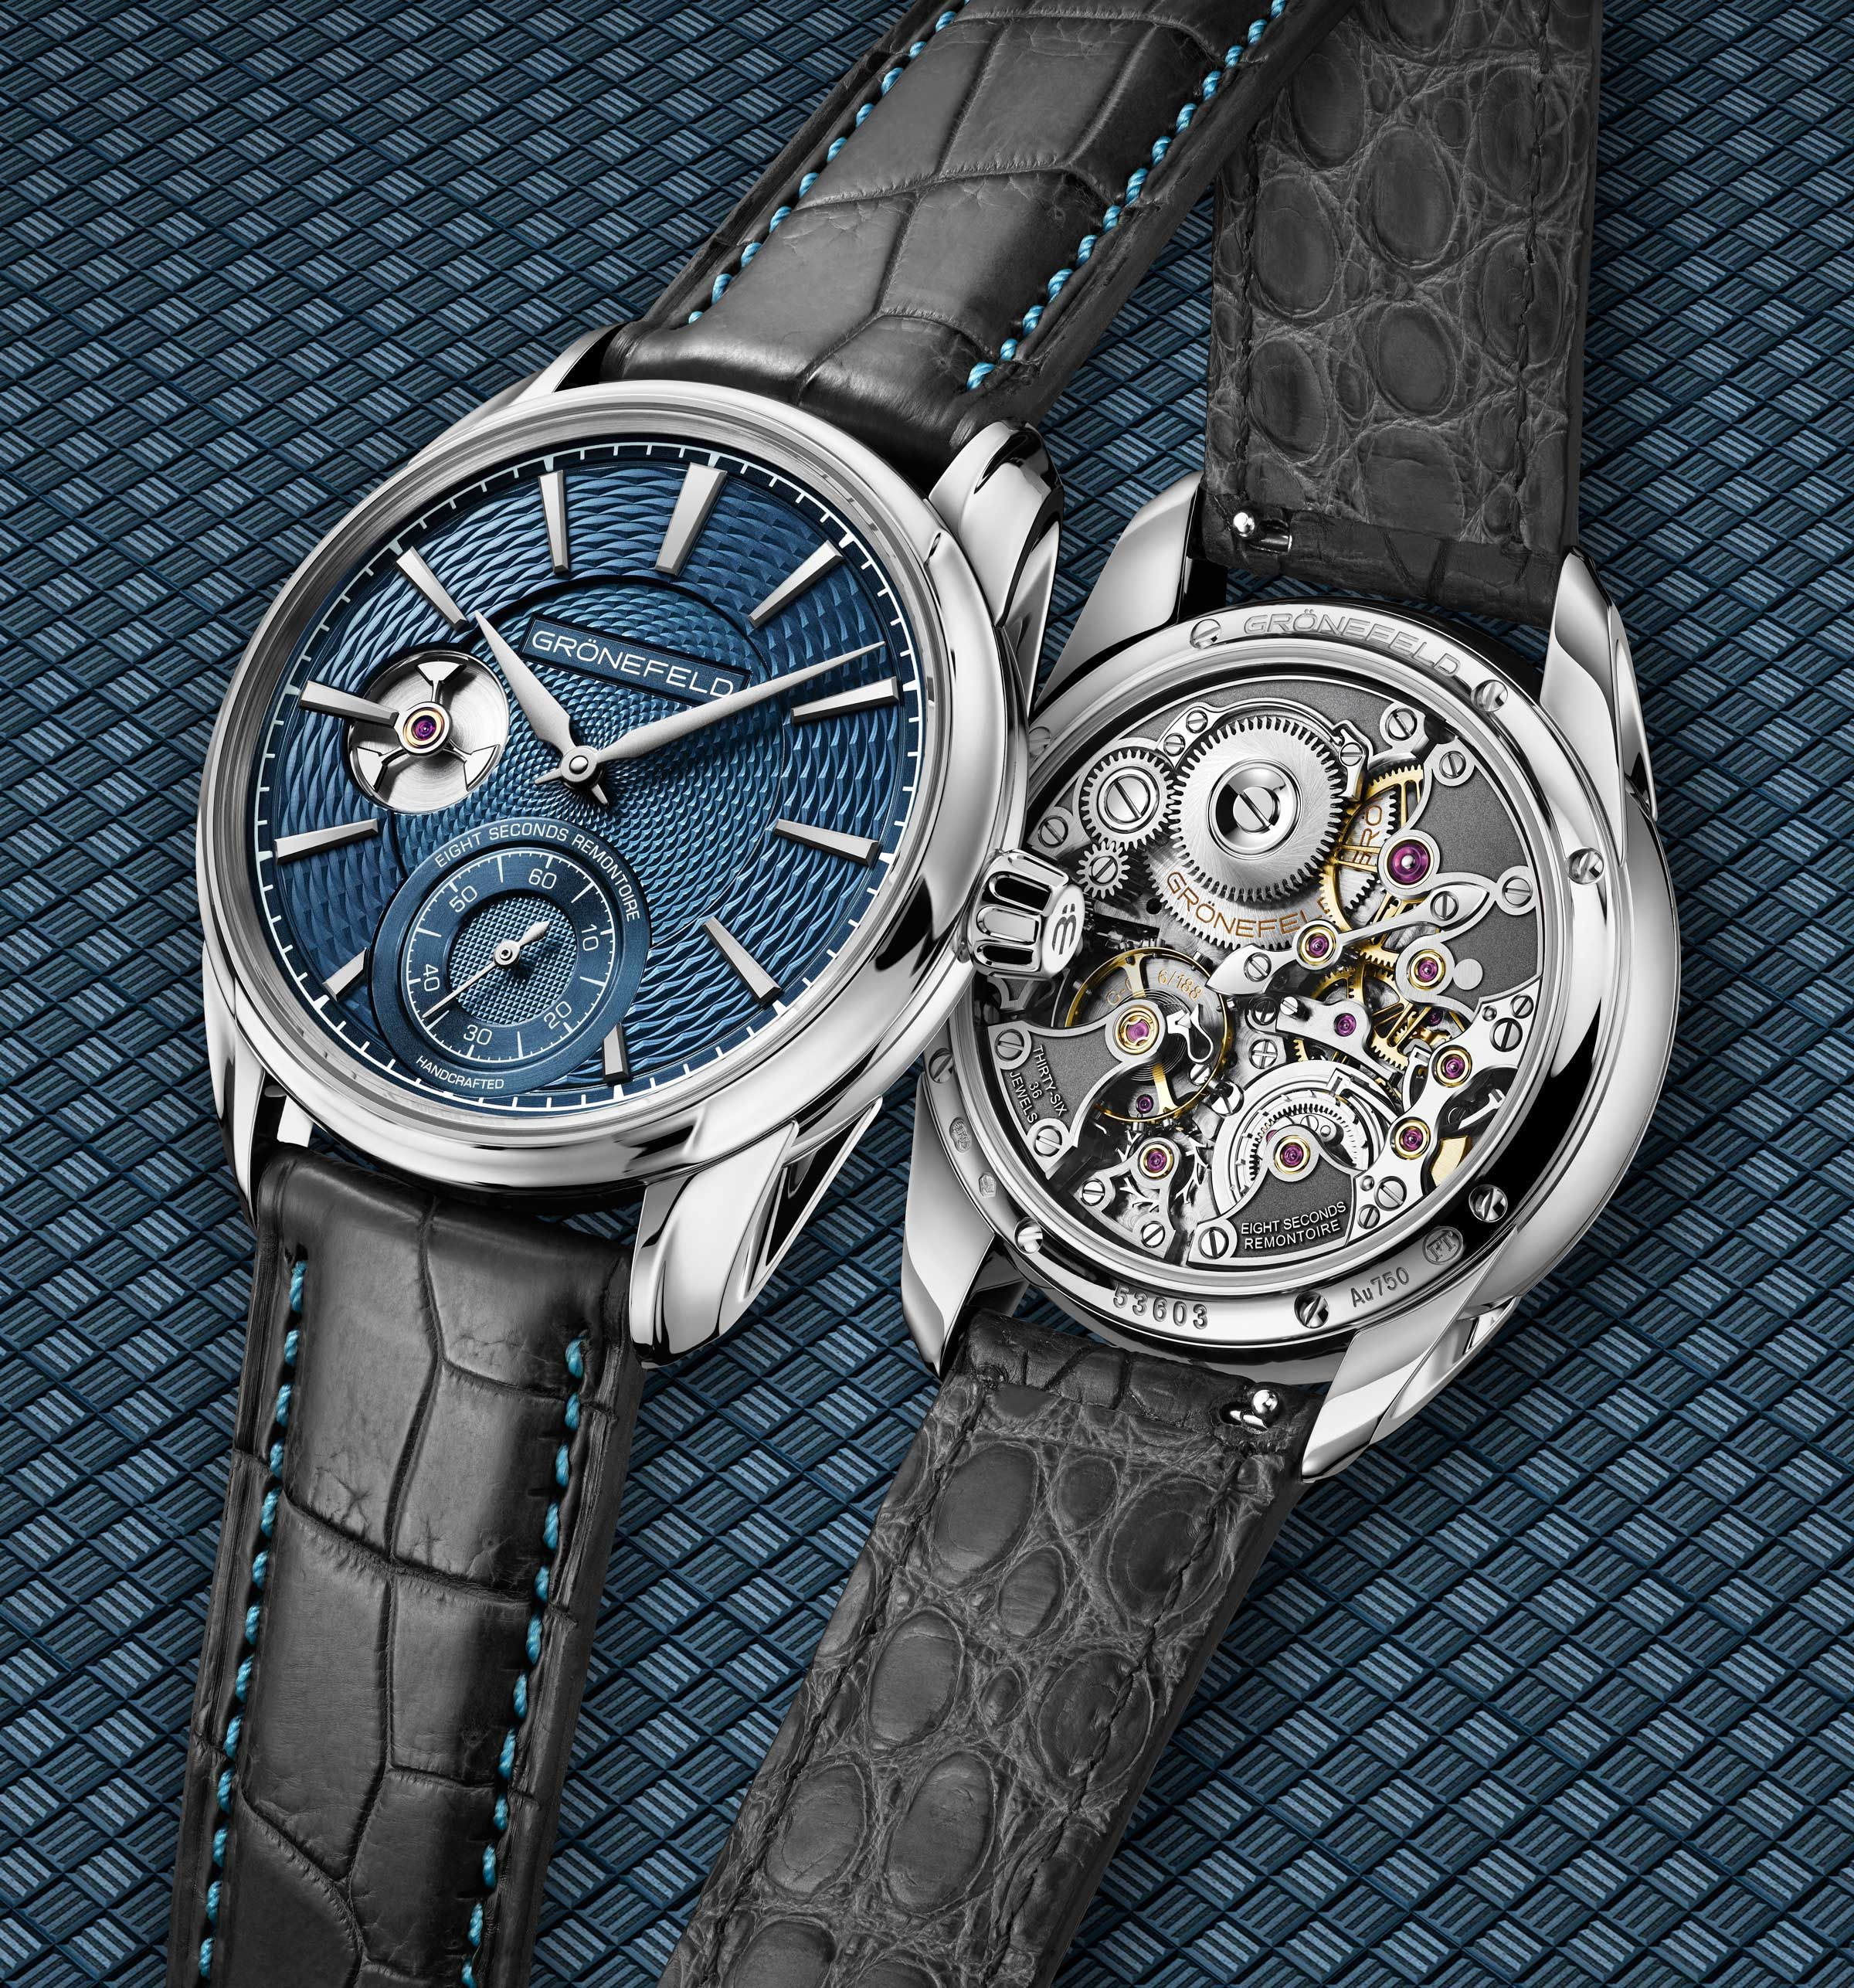 meet watches of elegant diamonds produce strauss to craftsmanship swiss amazing backes b masters